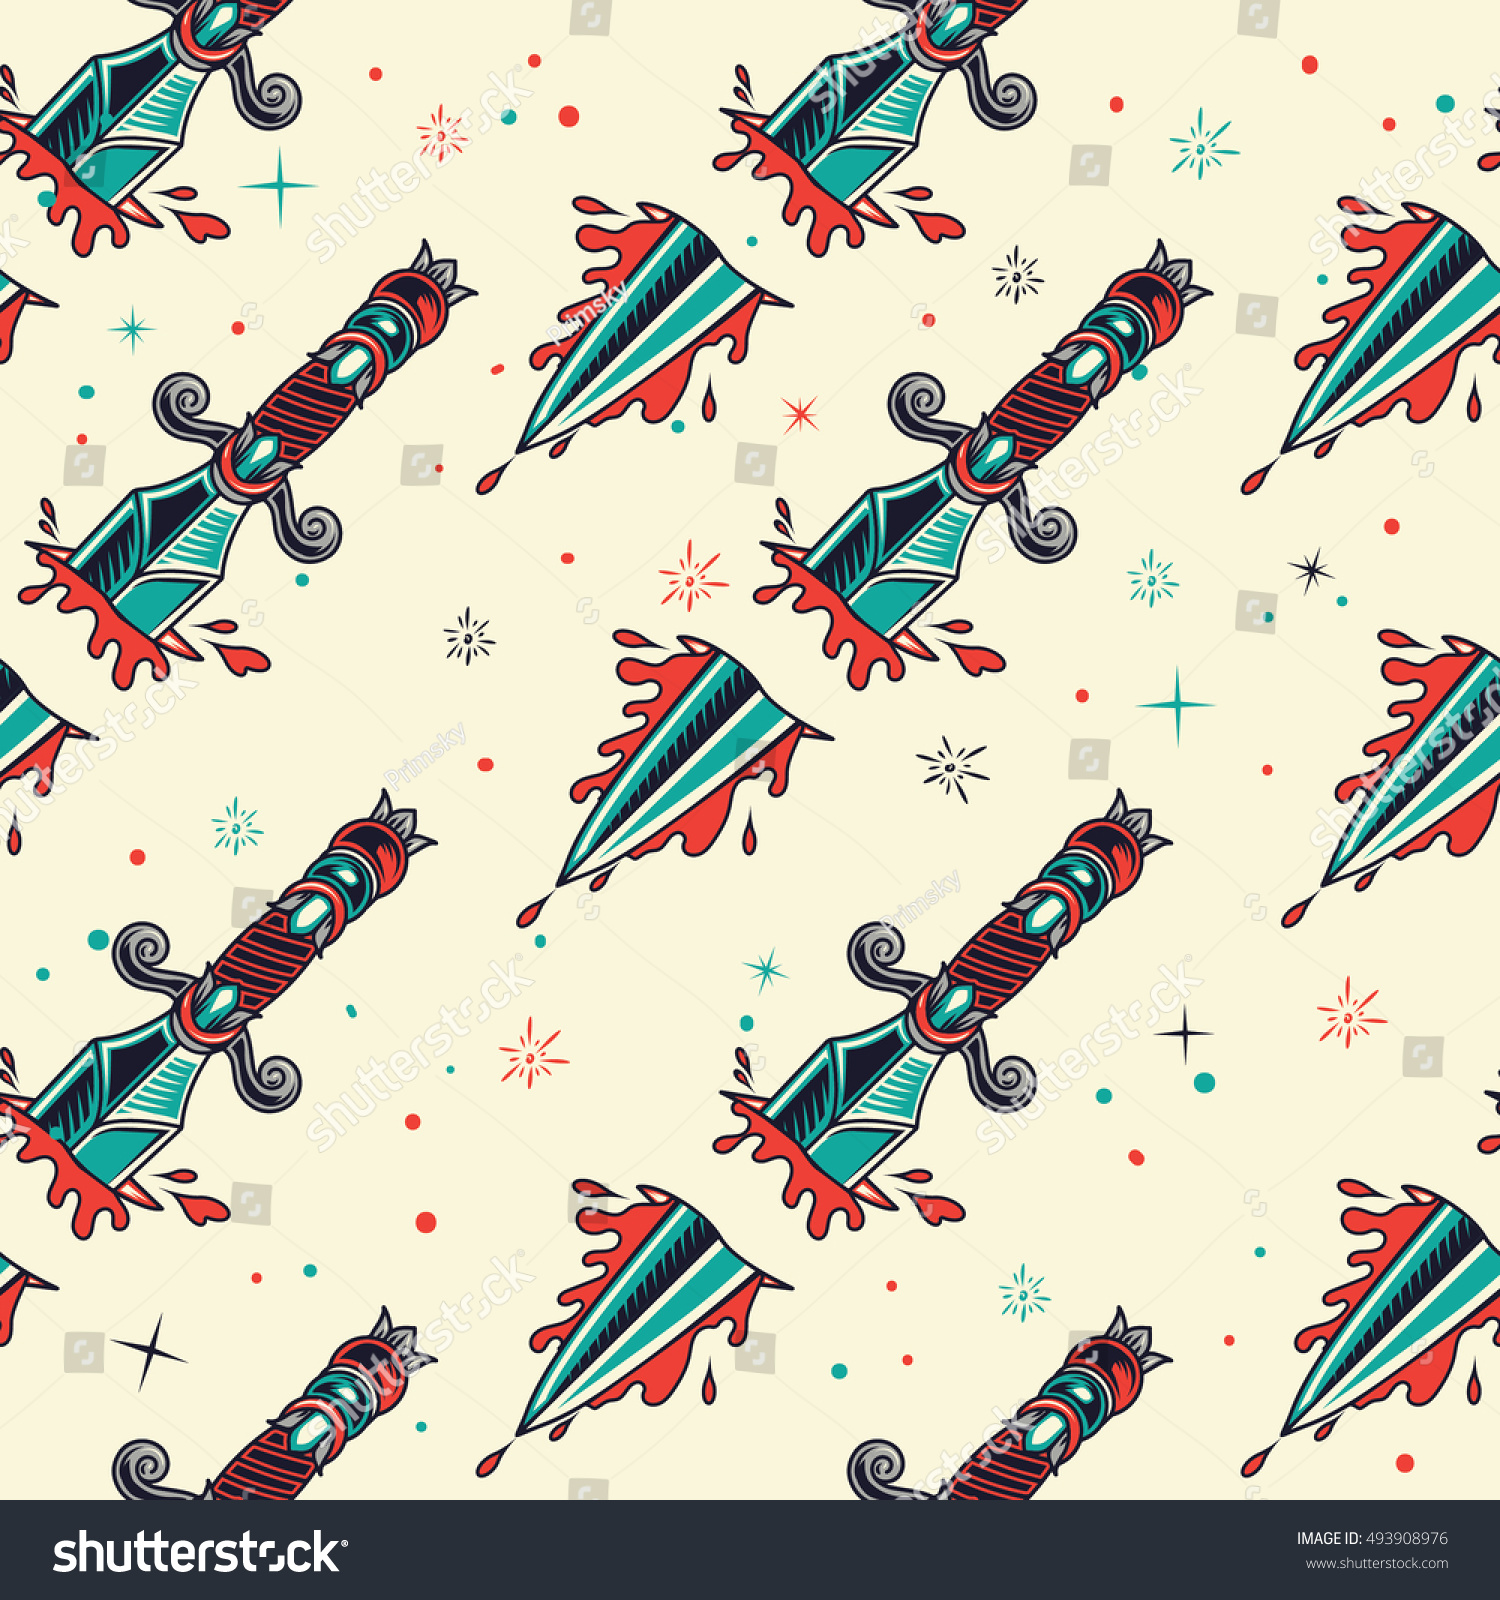 Connu Old School Daggers Tattoo Seamless Pattern Image Vectorielle  YX52